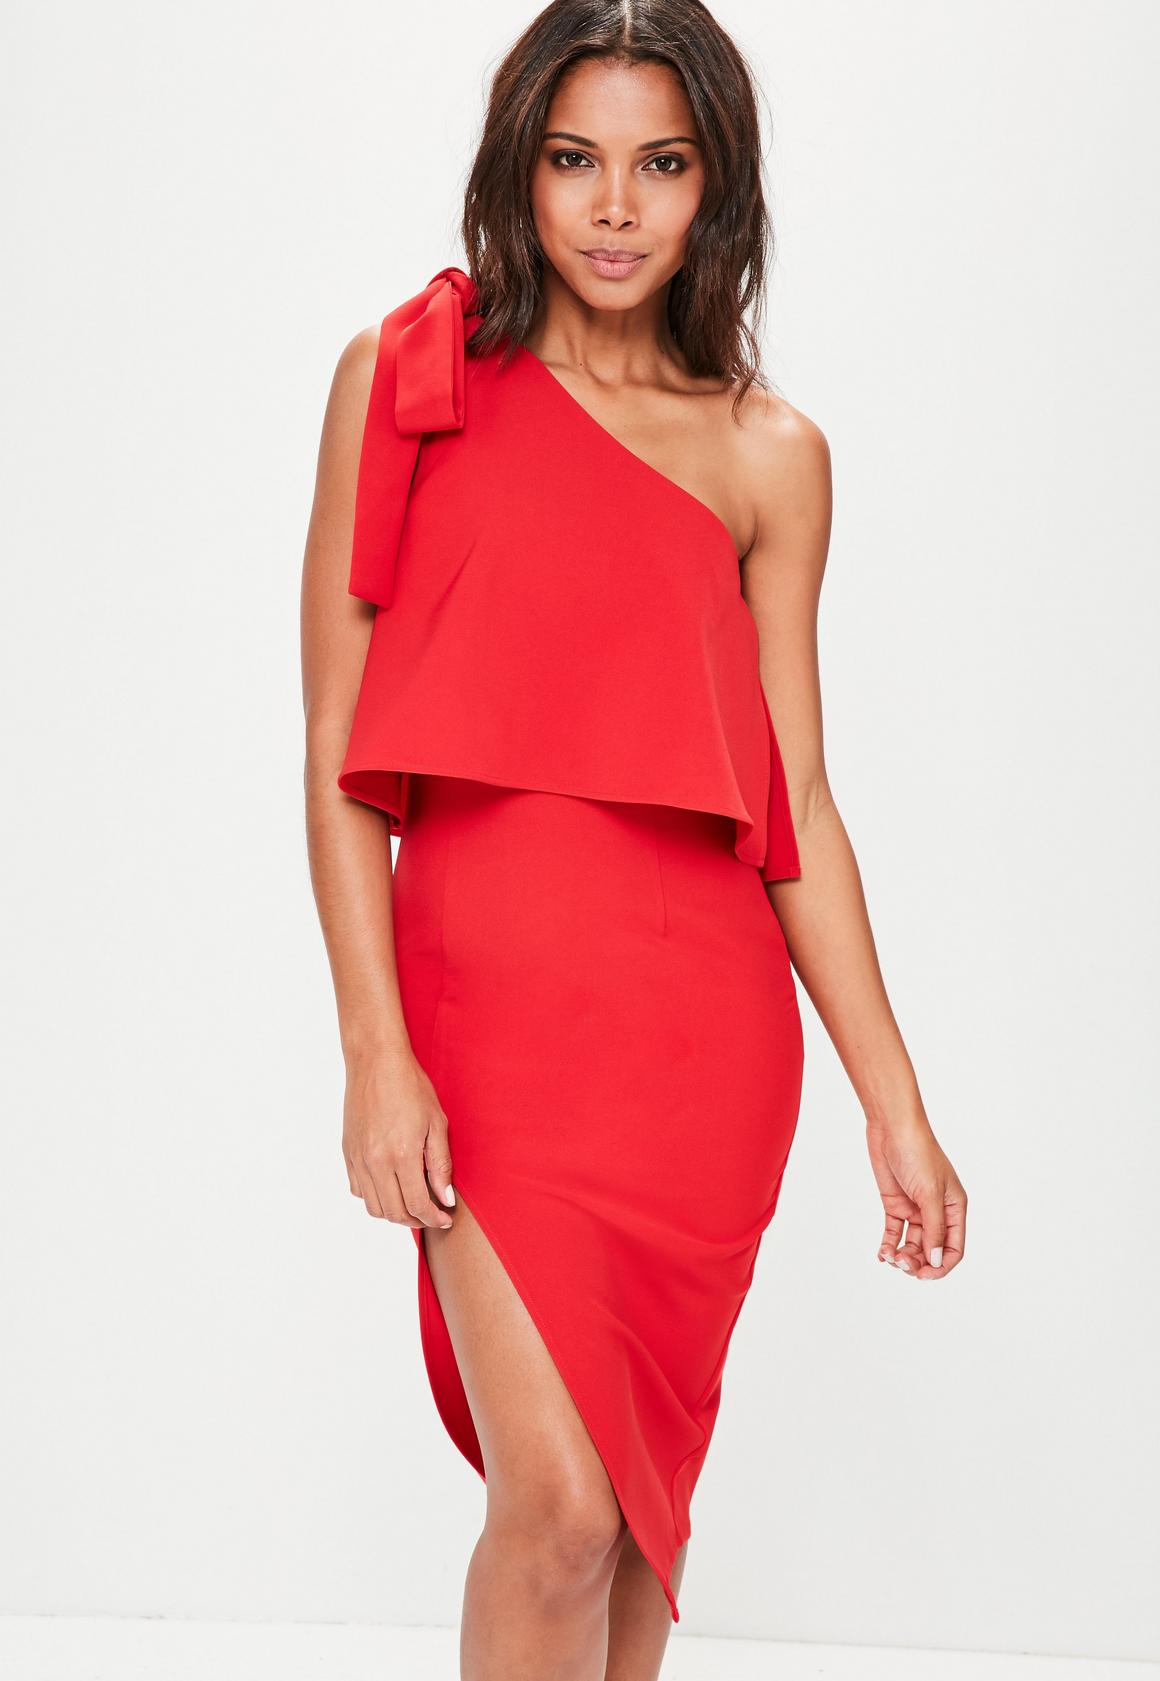 Red cocktail dress one shoulder